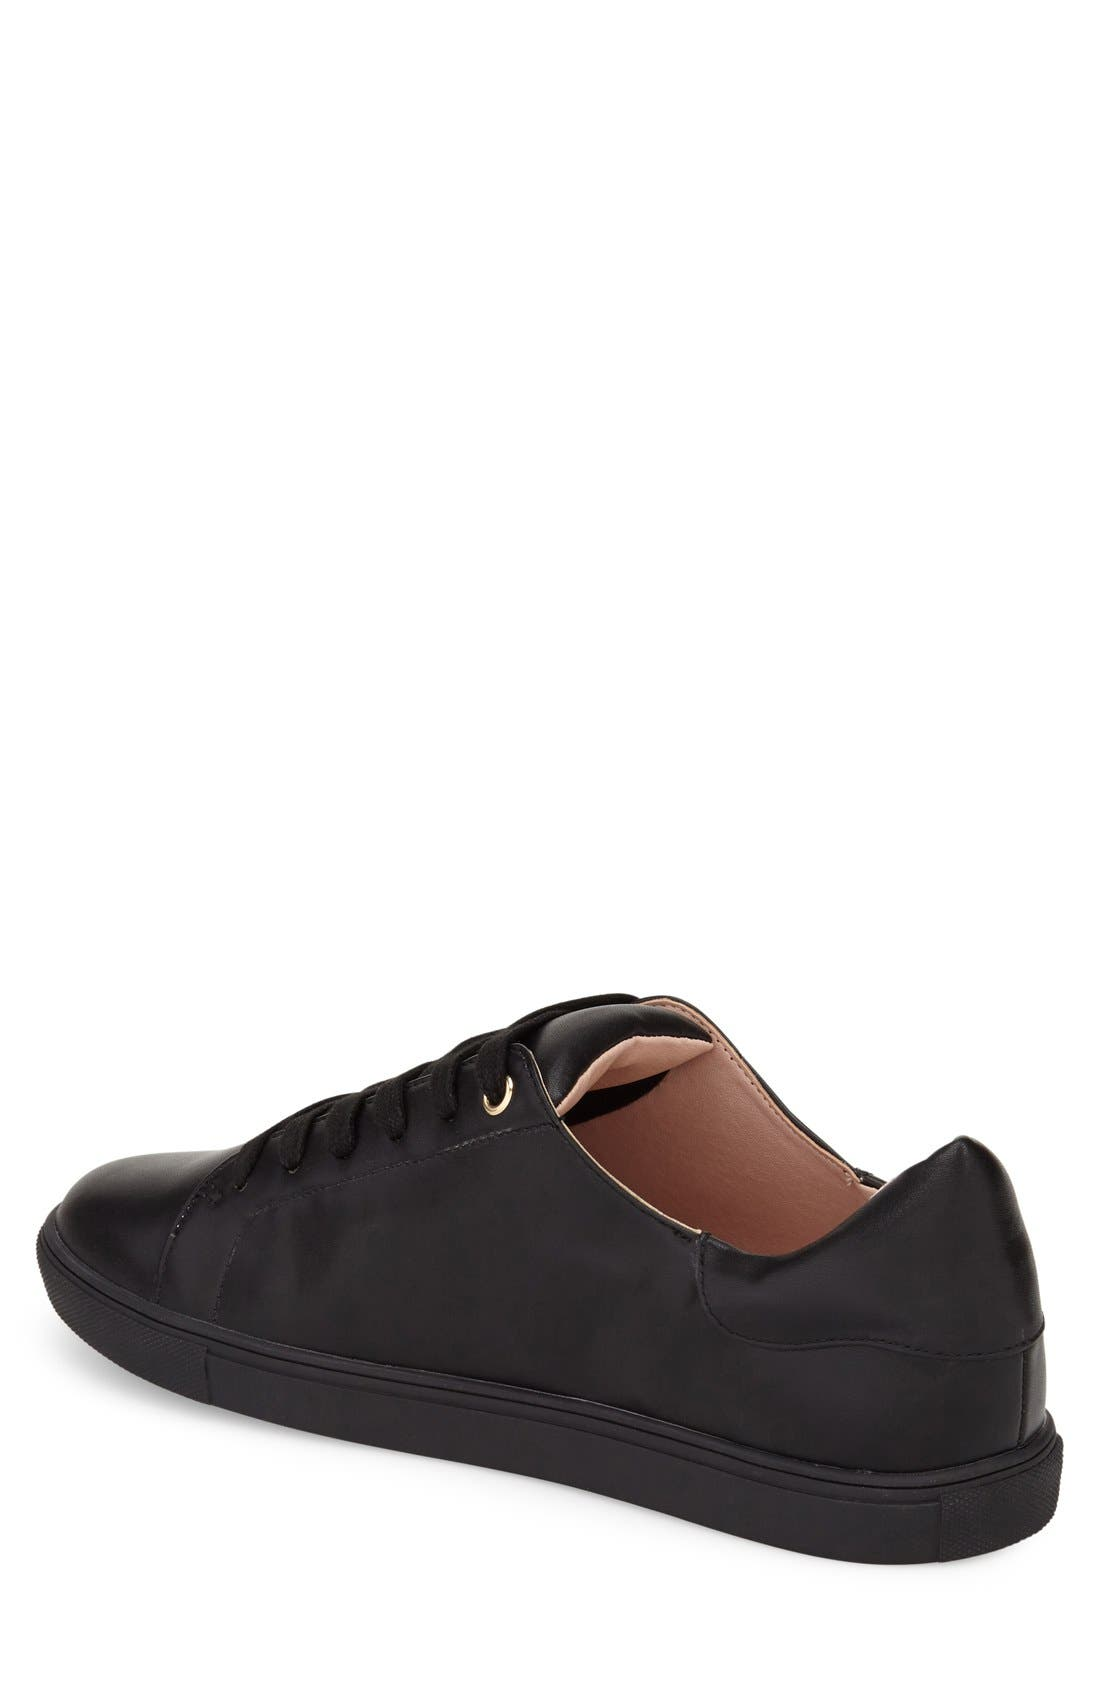 TOPSHOP, Catseye Sneaker, Alternate thumbnail 2, color, 001